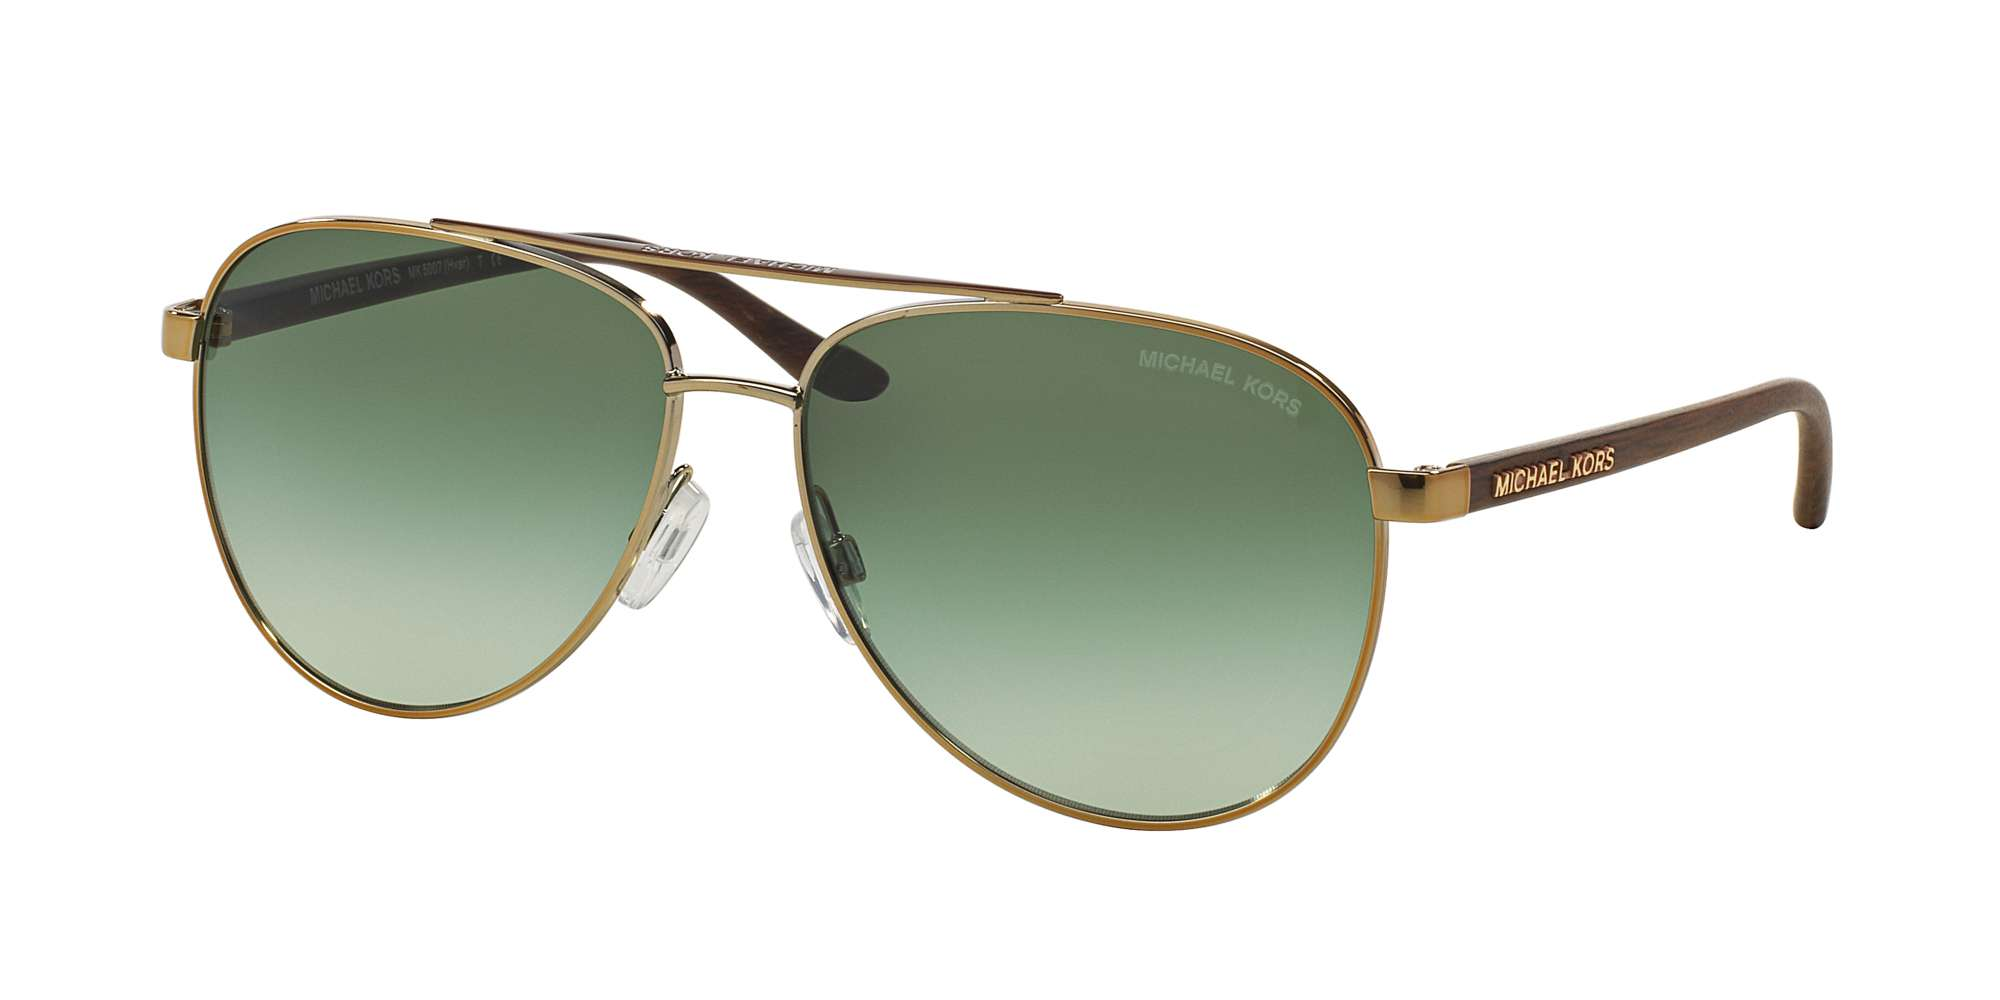 GOLD WOOD / GREEN GRADIENT lenses